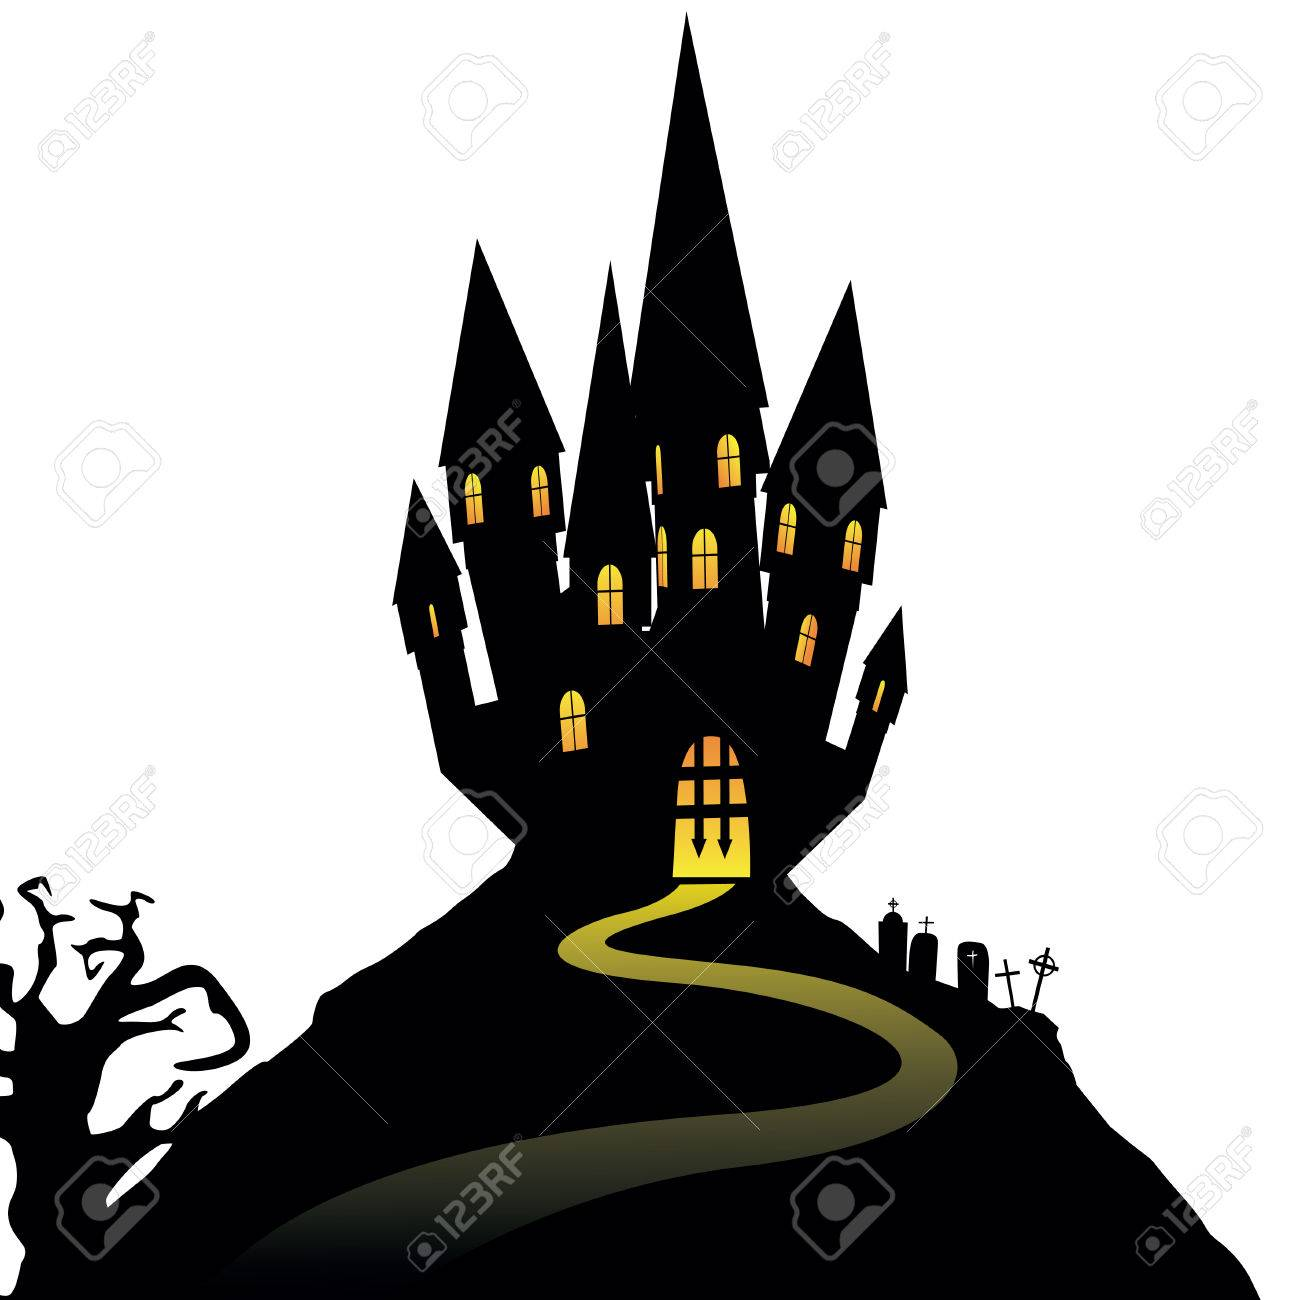 Halloween castle on hill isolated on white background, illustration - 62197428